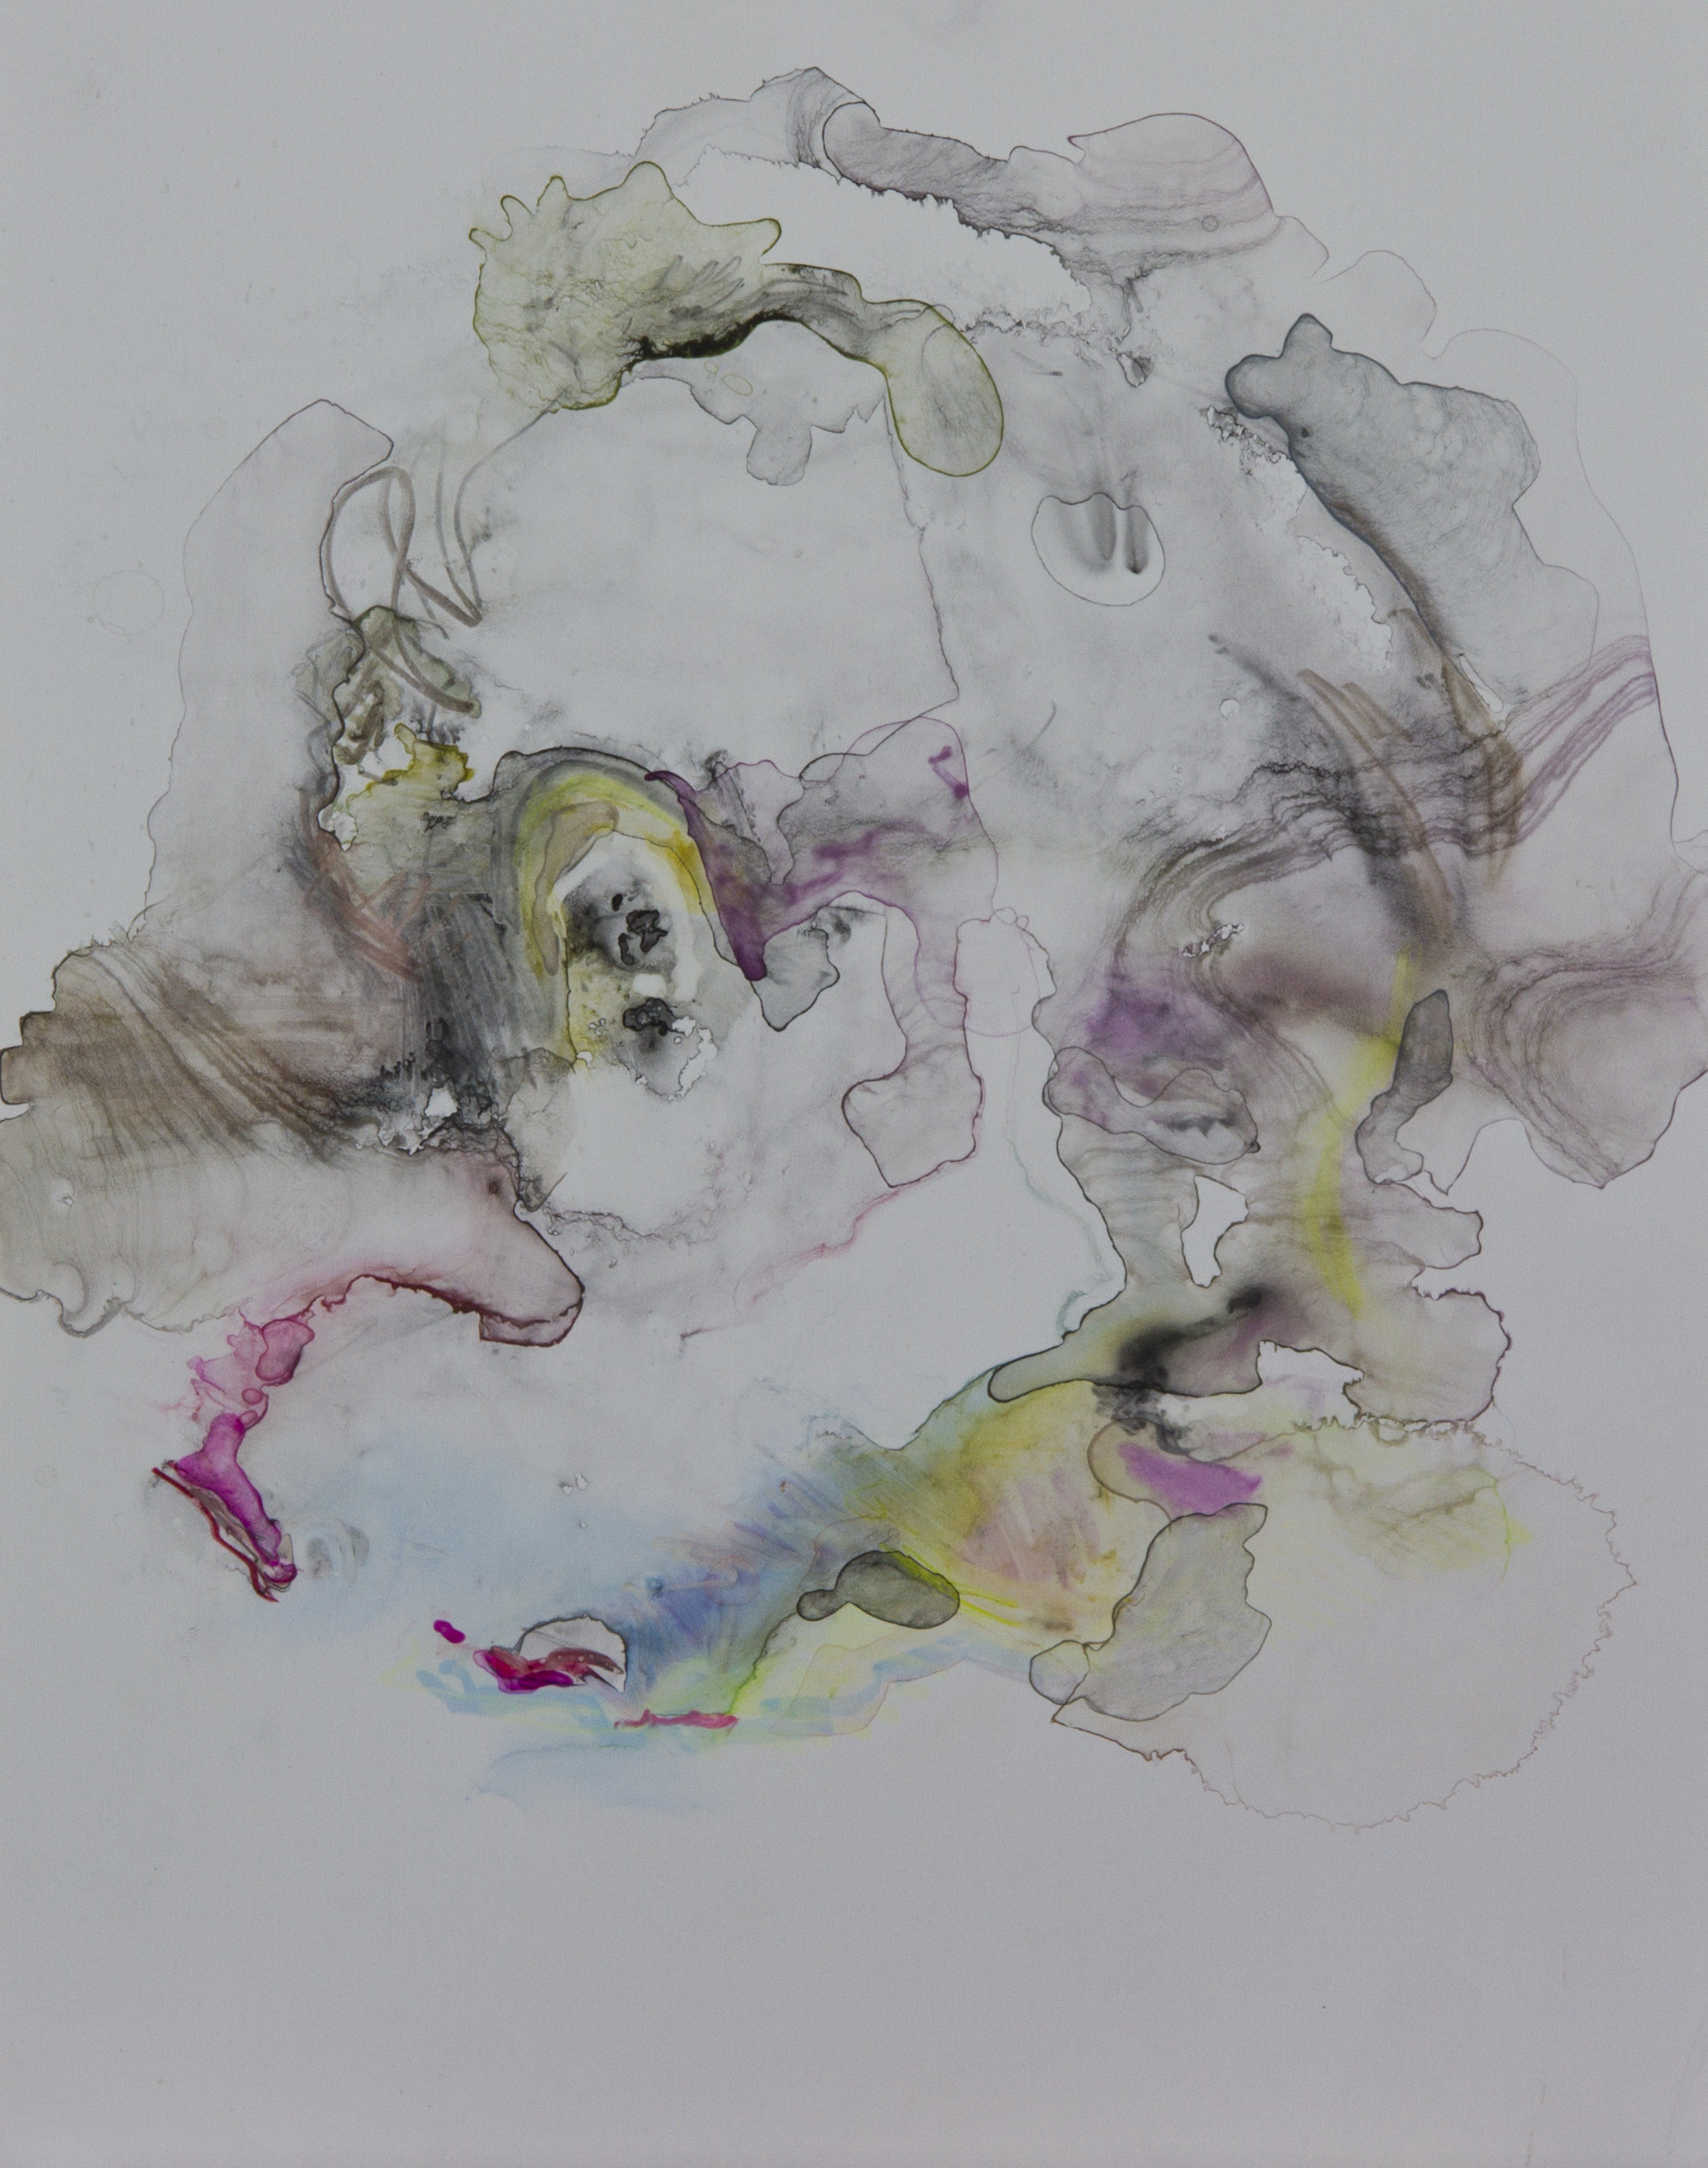 Specimen 8, 2011, watercolor on polypropylene, 11x14 inches